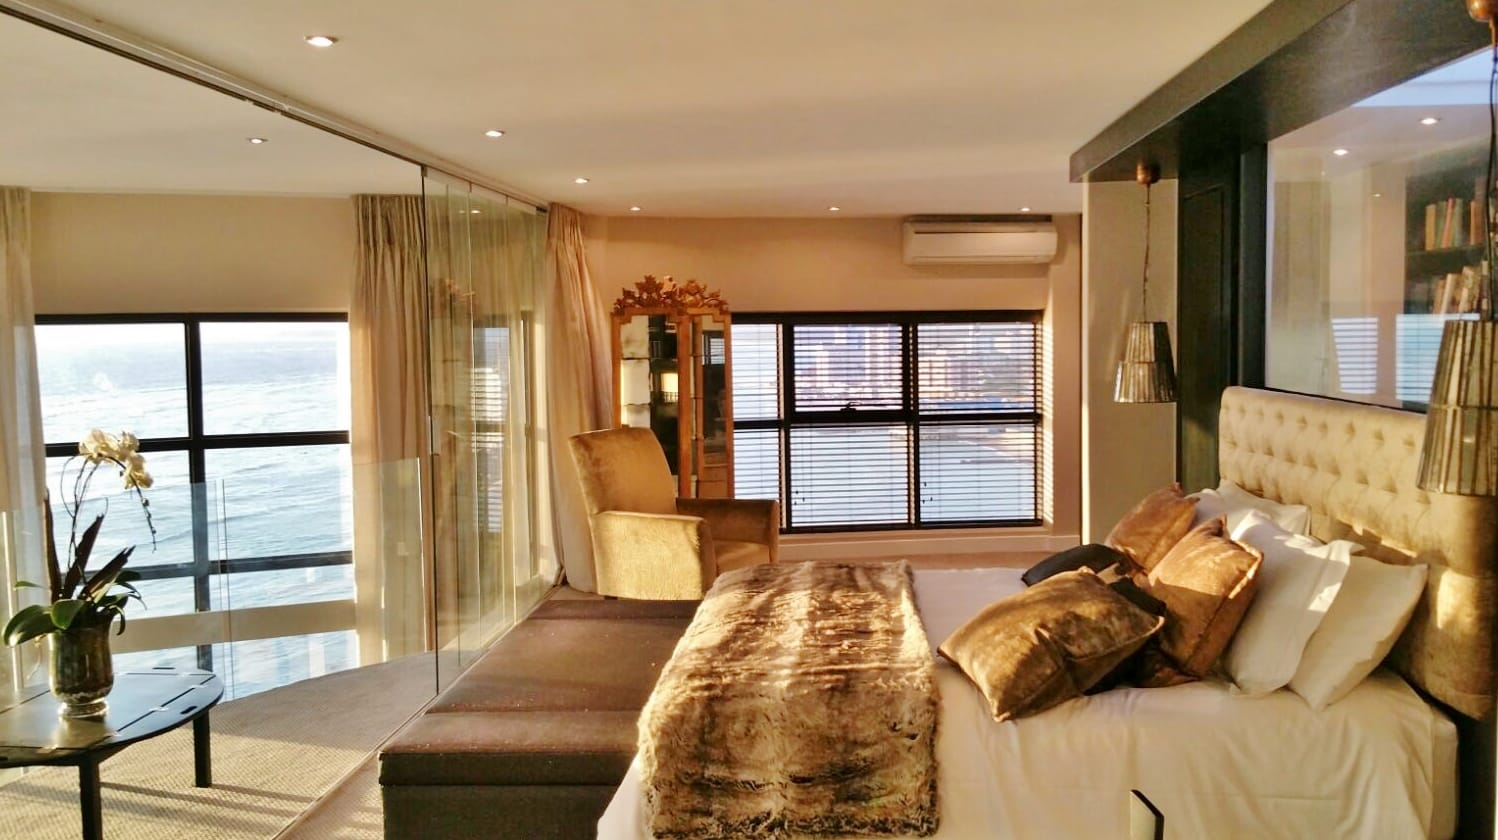 04_Project_Cape_Town_Penthouse_04_-_Copy